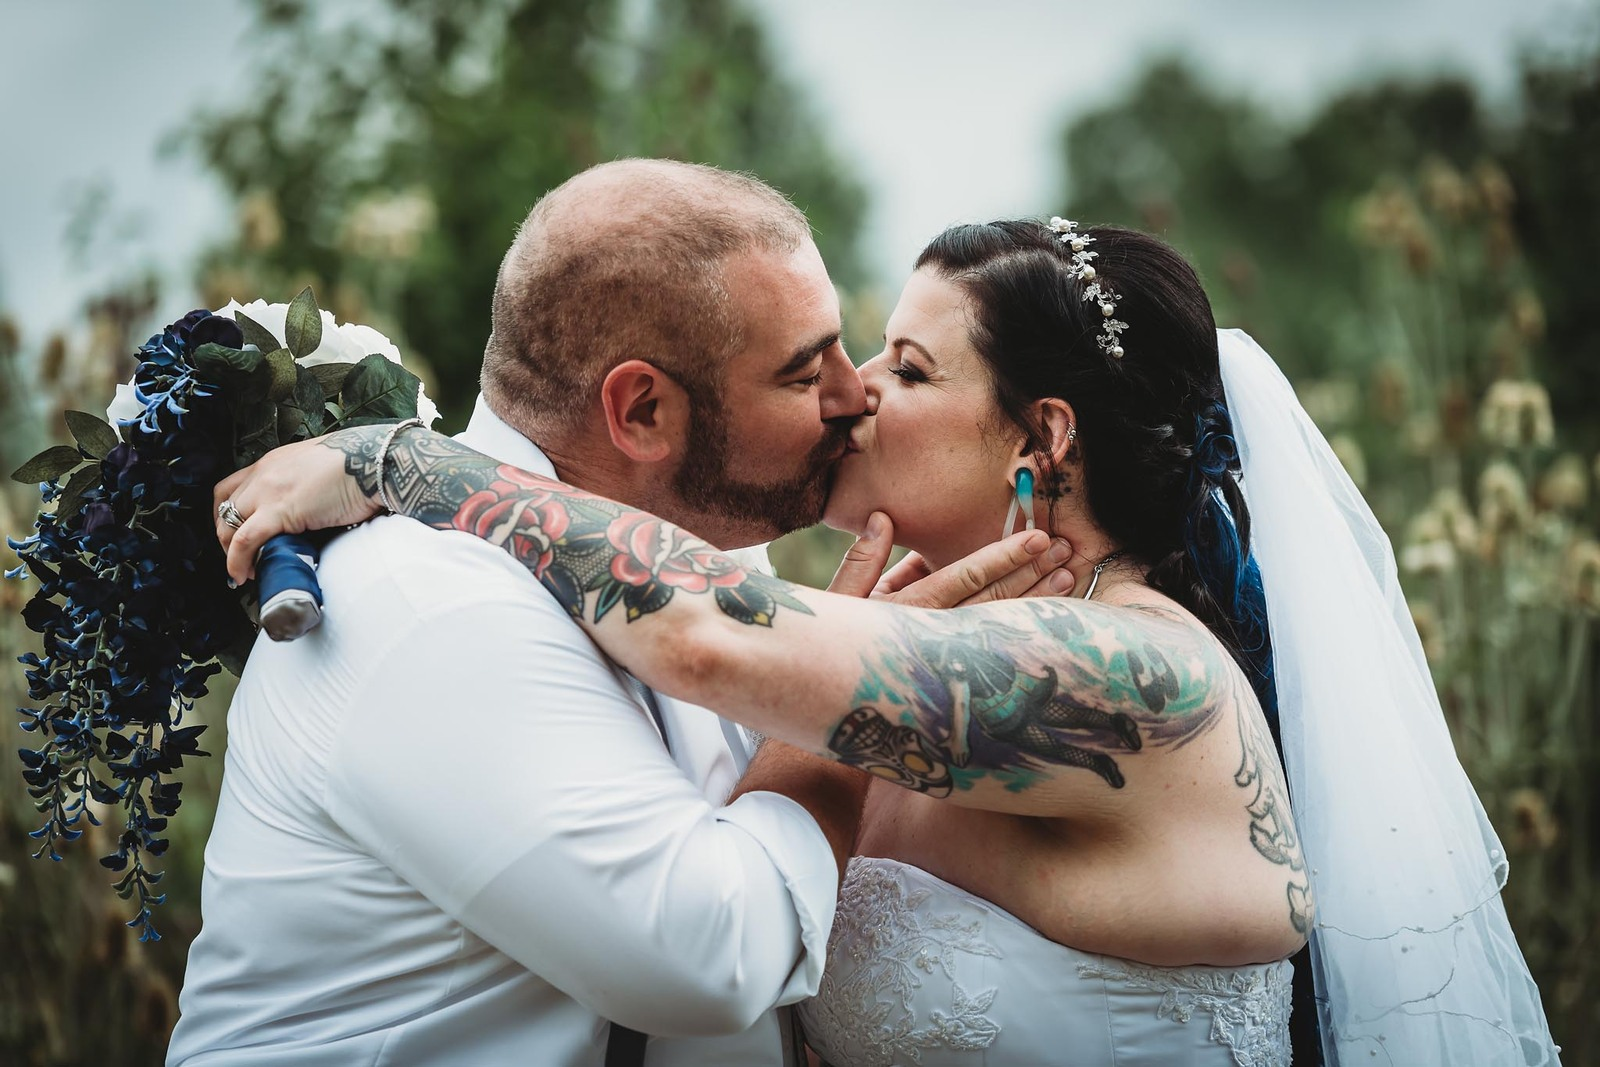 Bride with tattoos kissing groom outside at Ceruti's Catering in Fort Wayne, Indiana after summer wedding